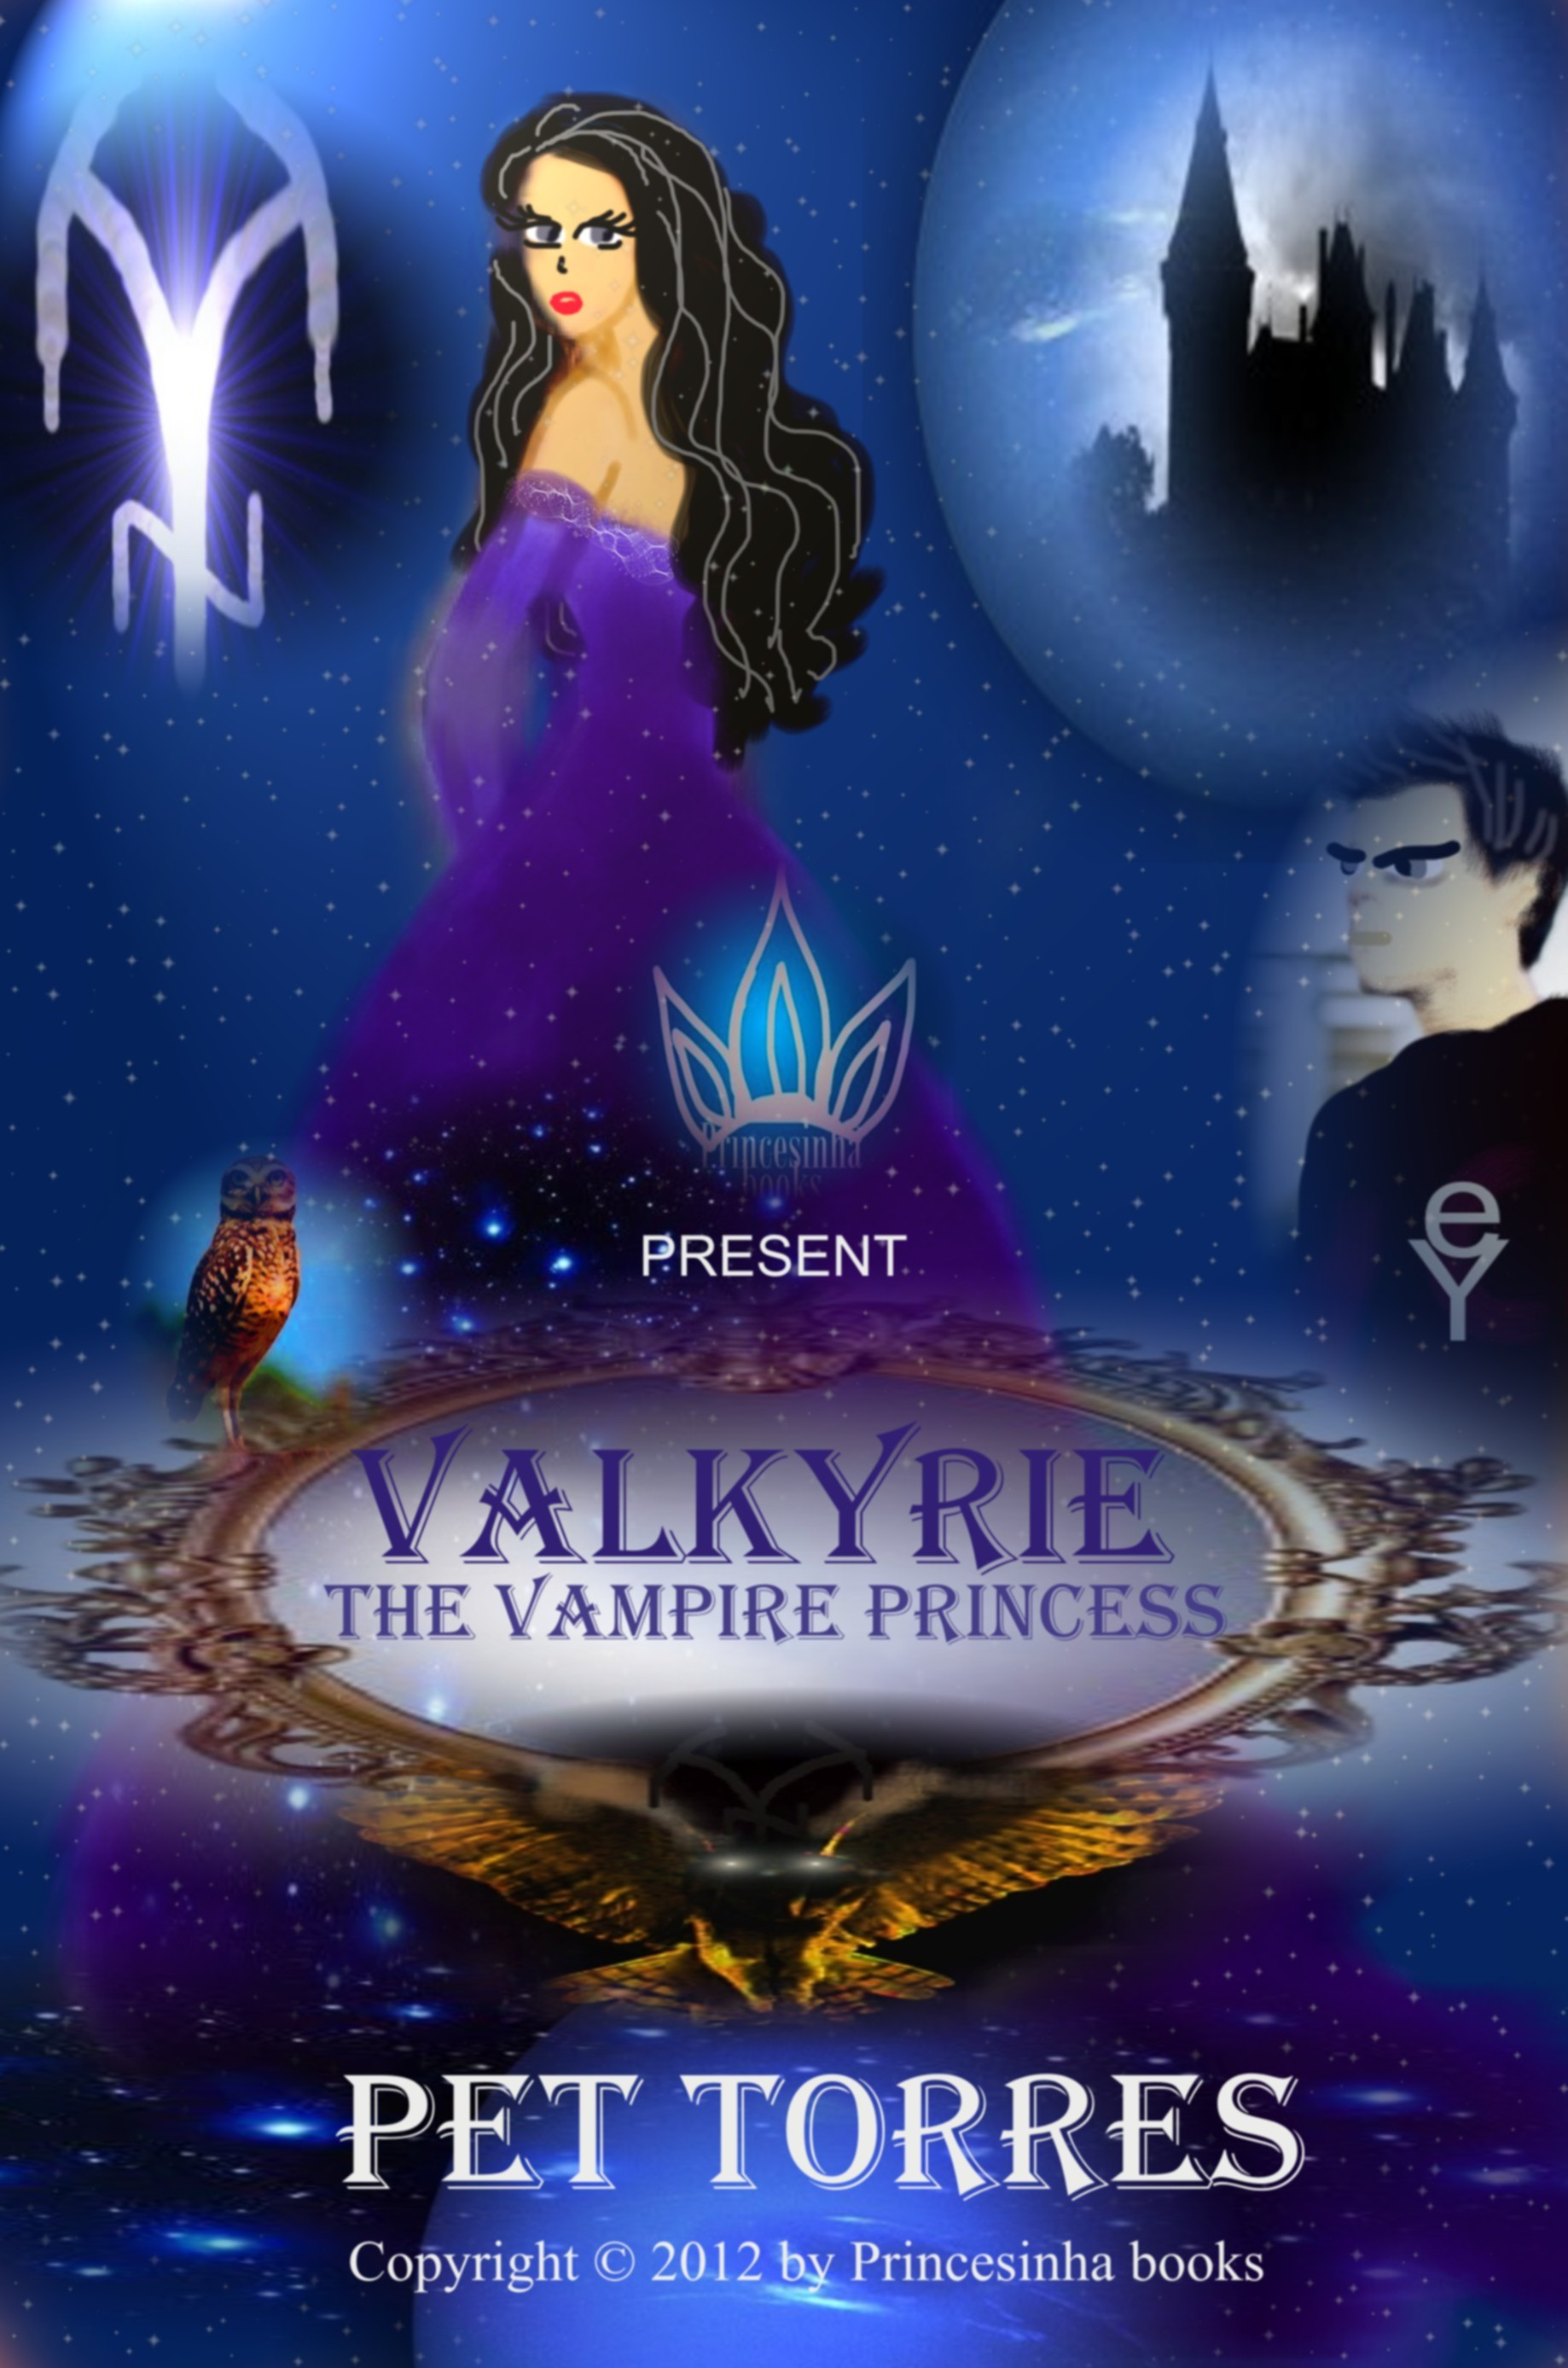 Valkyrie - the vampire princess ( especial edition - book for children) By: Pet Torres